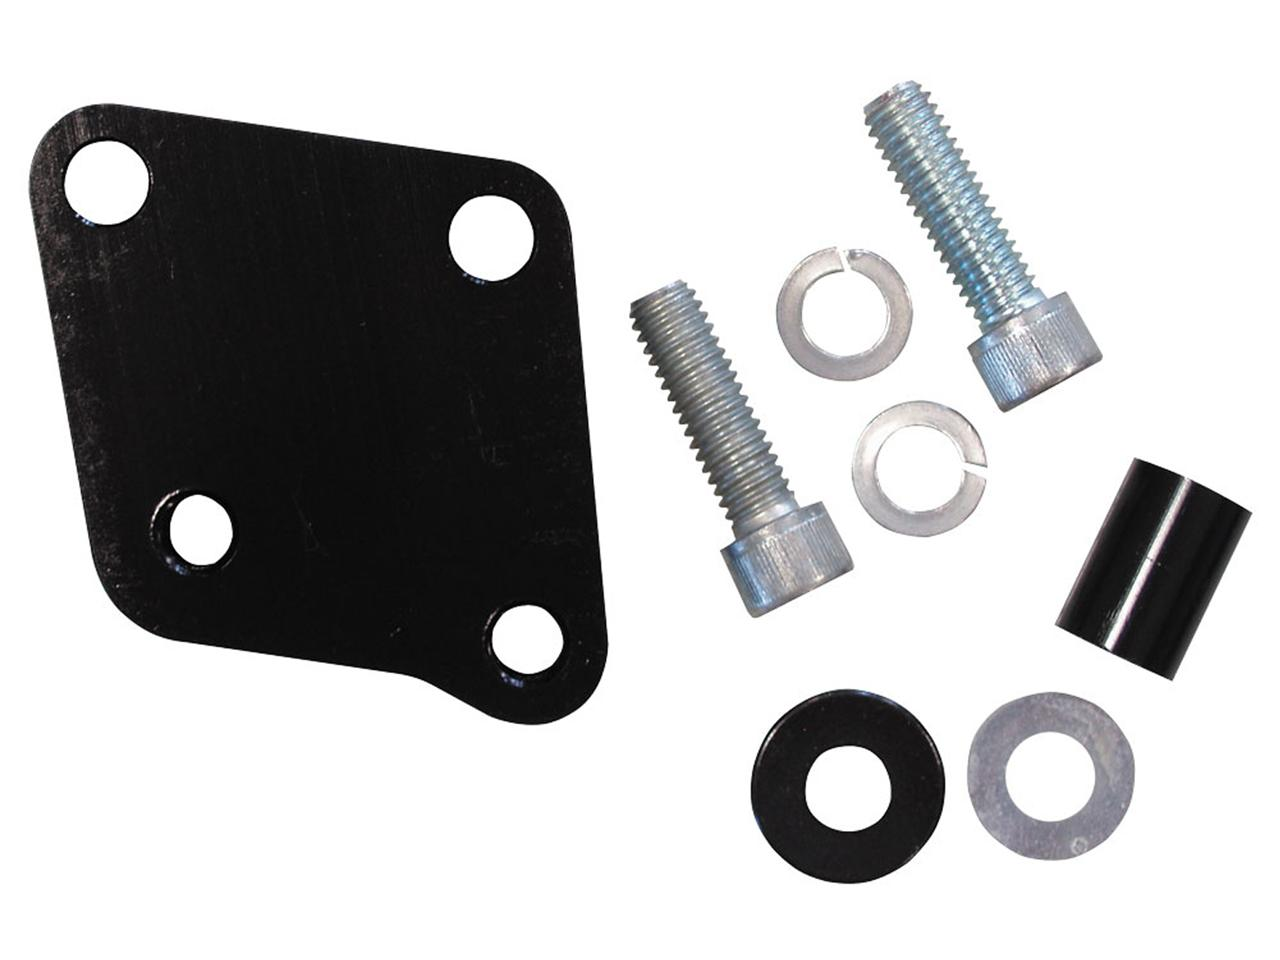 Picture of KSE Chevy Mounting Bracket